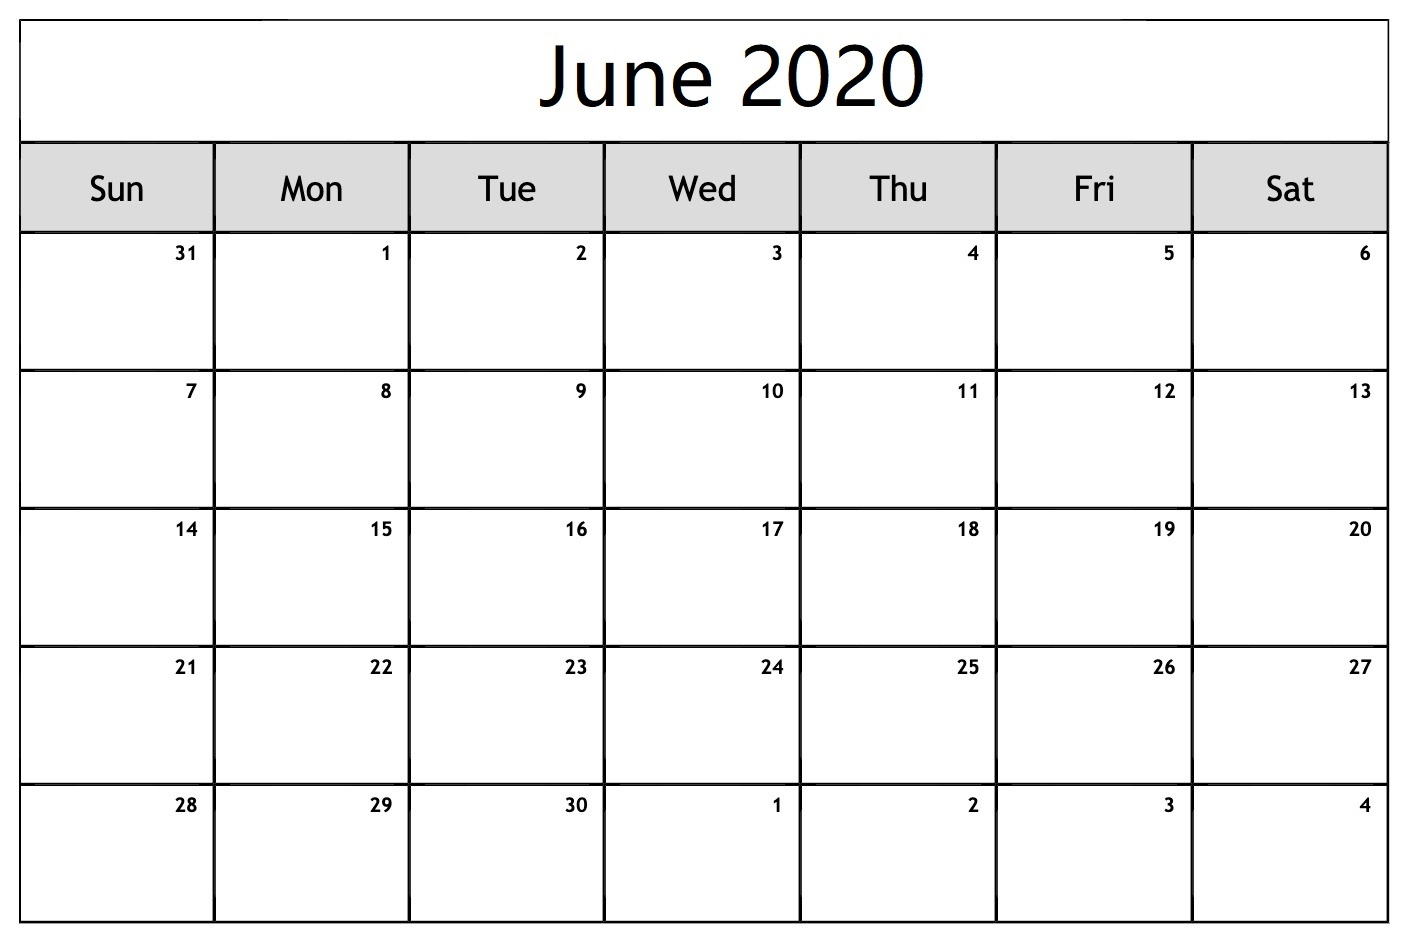 June 2020 Calendar Word File